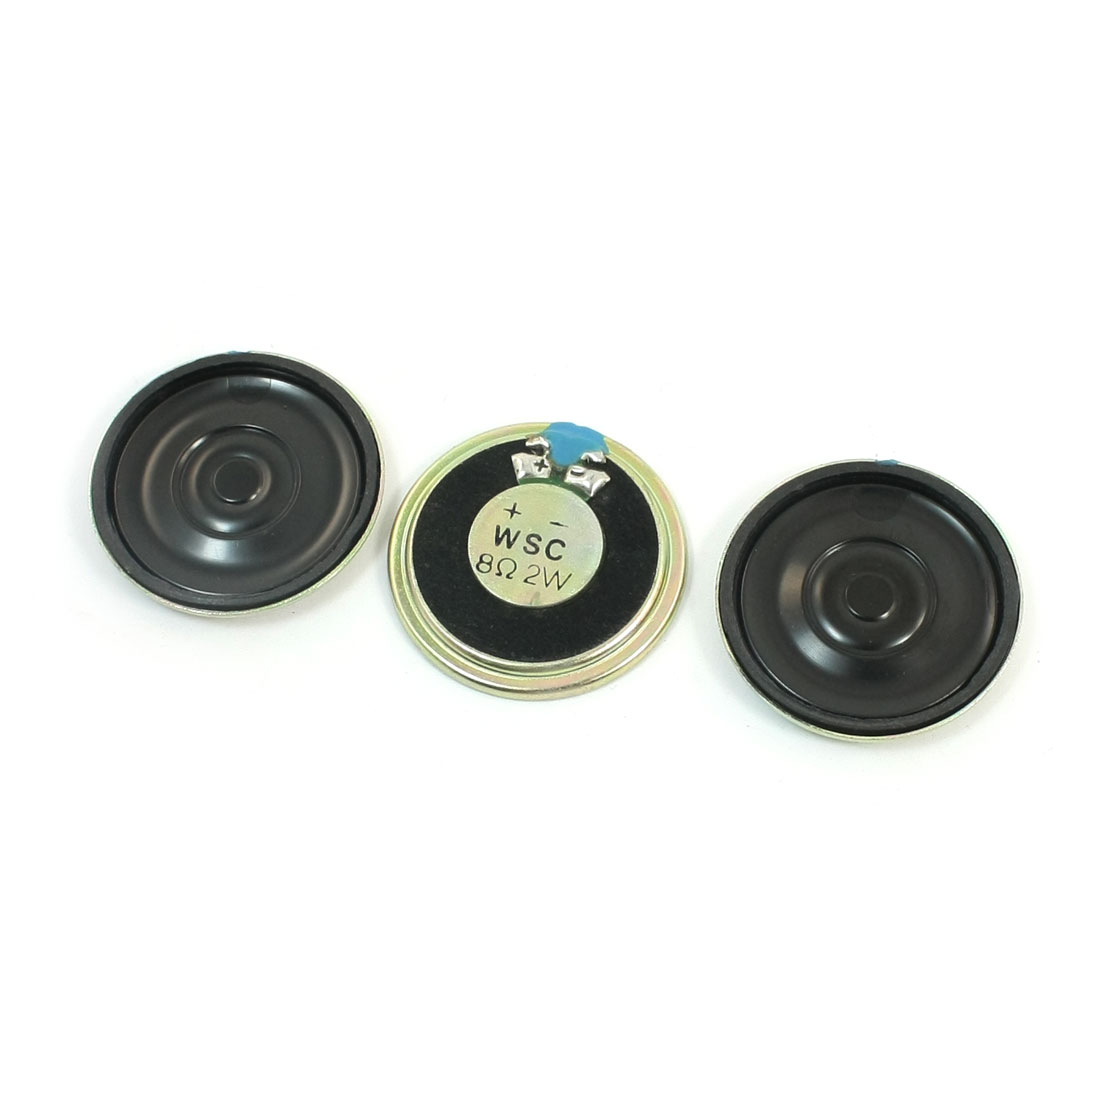 3 Pcs 36mm Dia Round Metal Case Internal Magnet Music Player Audio Speaker Loudspeaker Amplifier 2W 8 Ohm Replacement